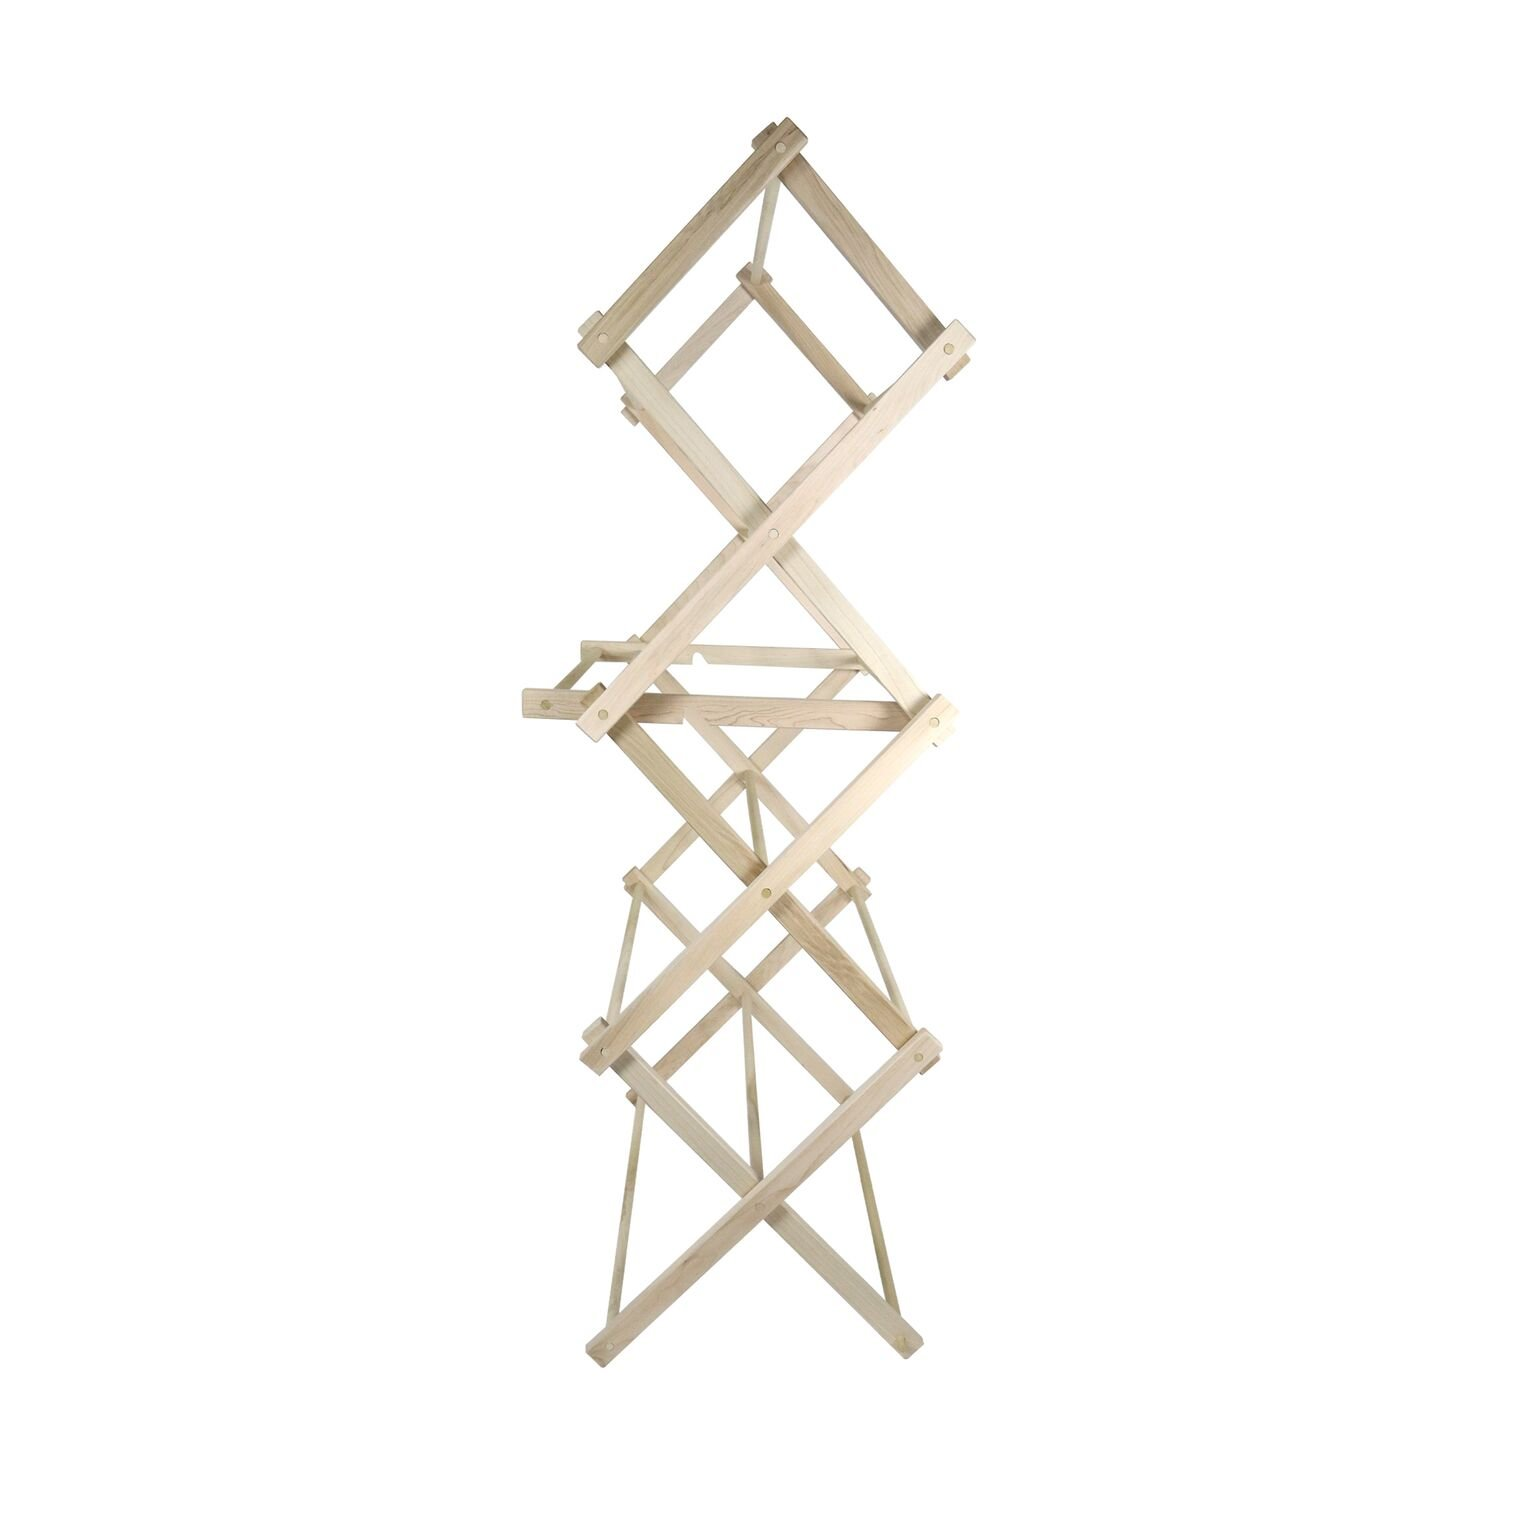 """LifeSong Milestones American Made Clothes Drying Rack Collapsible Folding Two Height Wooden Quilt Rack 36'' x 28'' x 7.5"""" 100% hardwood Made in the USA (36'') by LifeSong Milestones (Image #4)"""